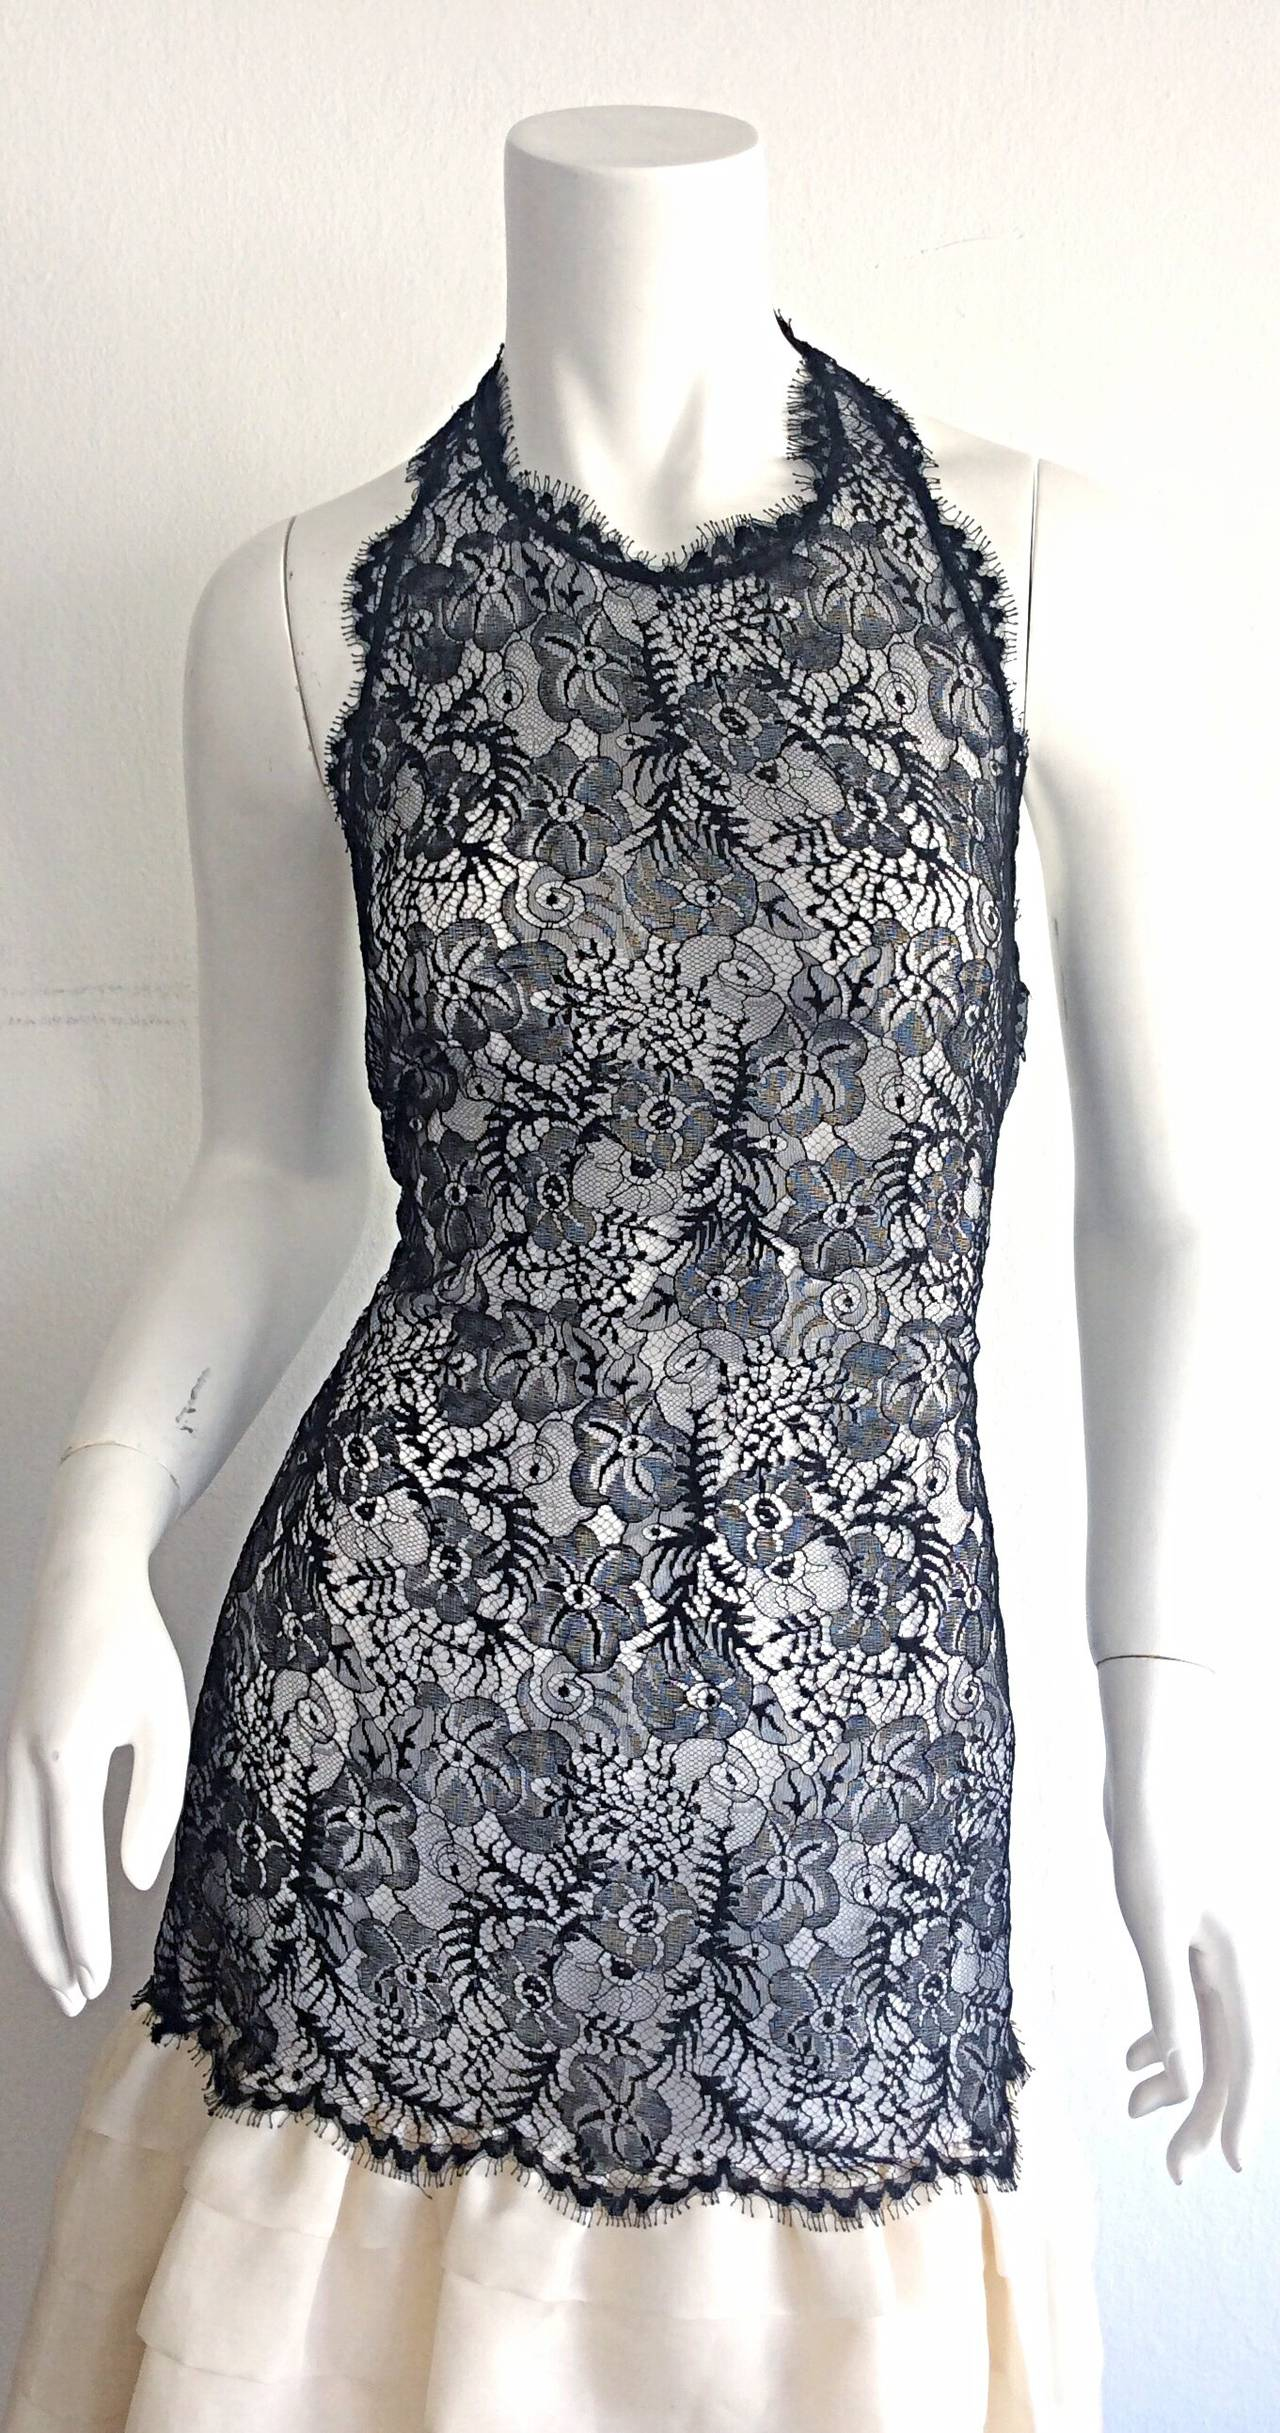 Absolutely stunning vintage Mary McFadden Couture Numbered Dress. This wonderful dress is Demi-Couture, in that it is mostly hand-sewn. Beautiful black French lace on bodice, with extravagant cream taffeta tiered skirt. Avant Garde chiffon bow